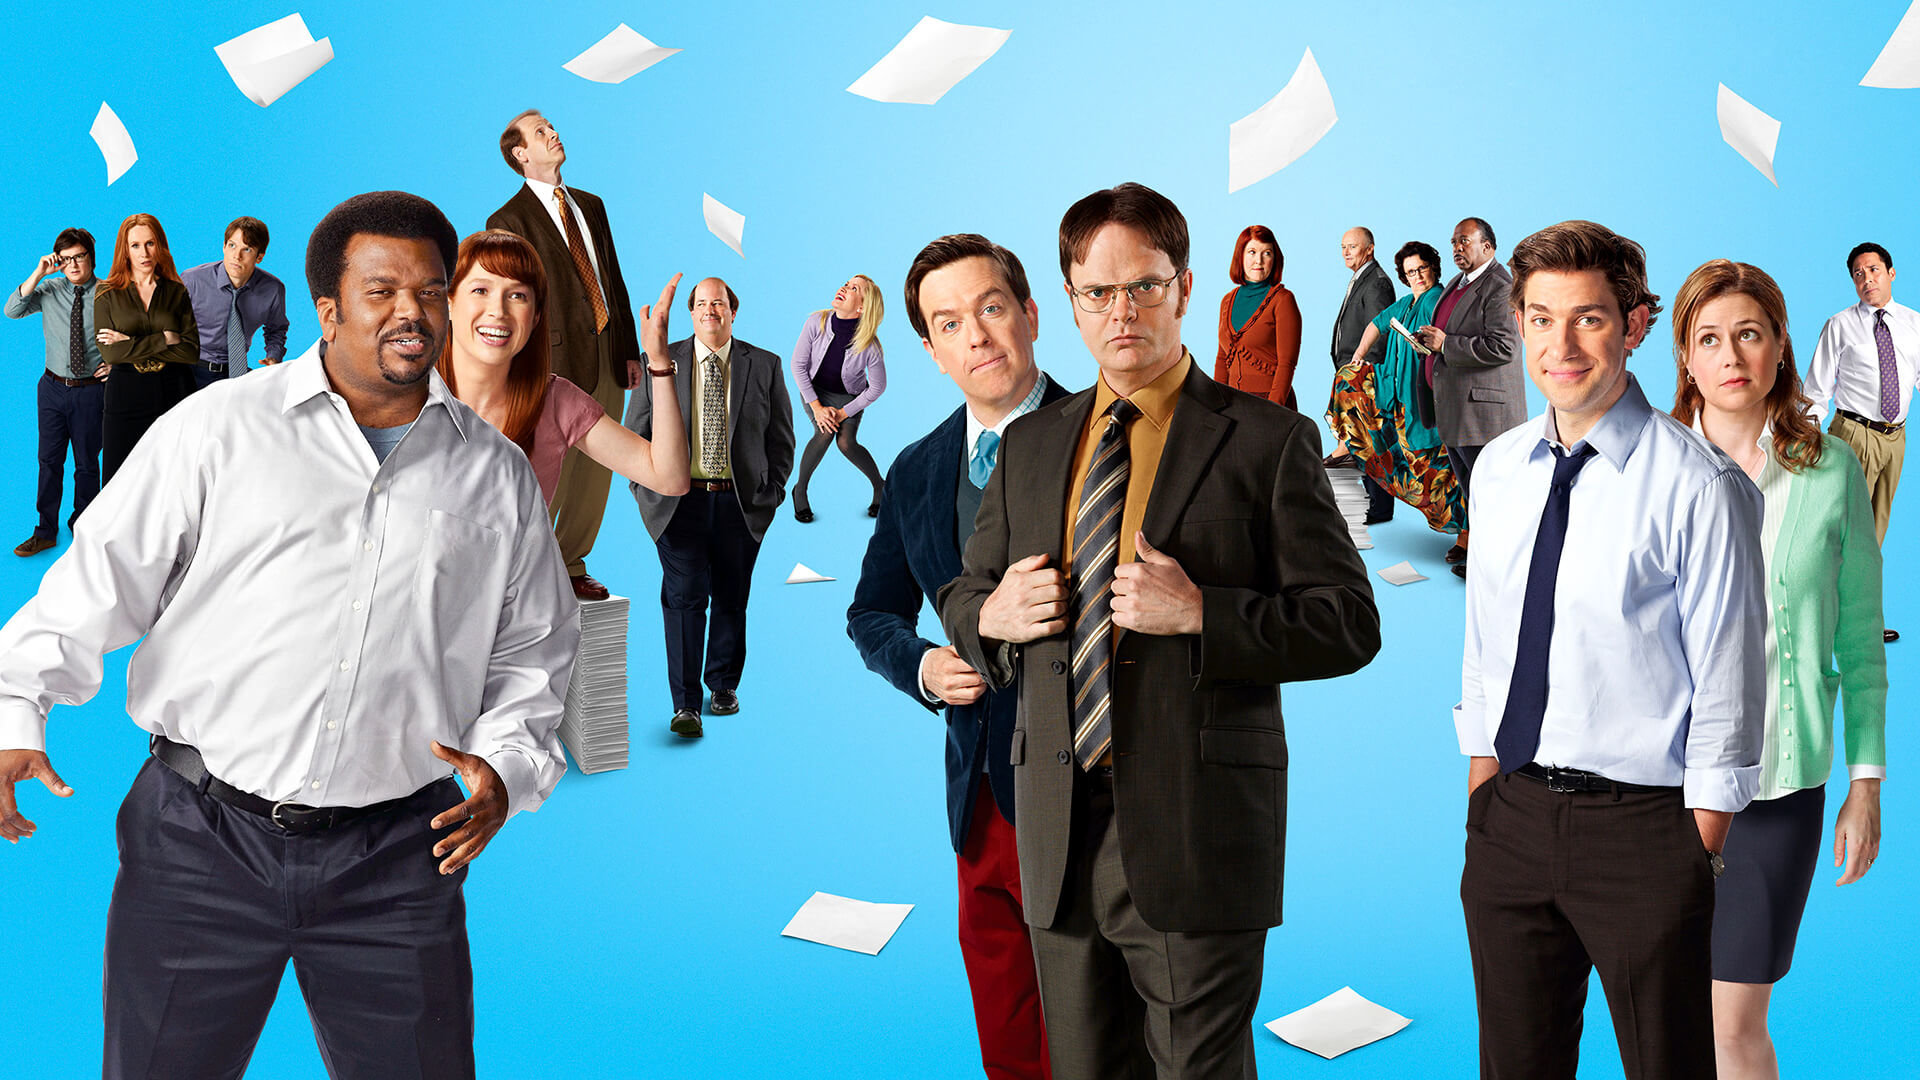 the office tv show wallpaper 68632